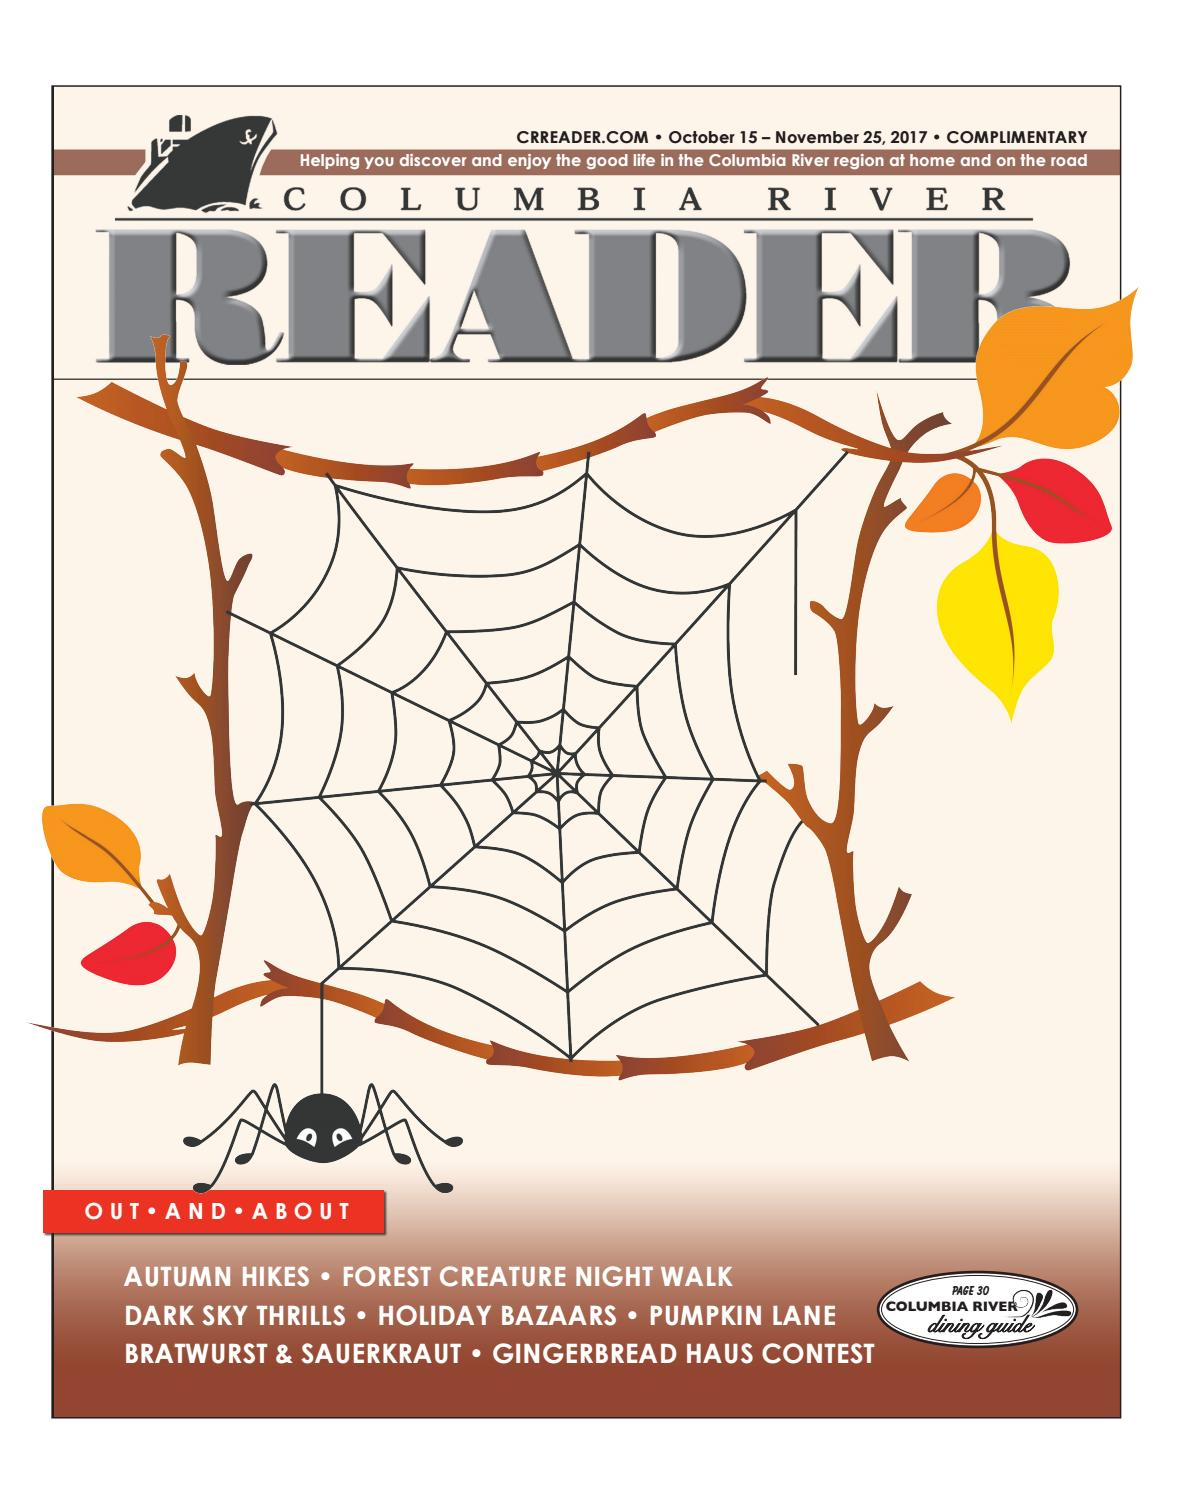 CRR Oct 2017 by Susan Piper - issuu